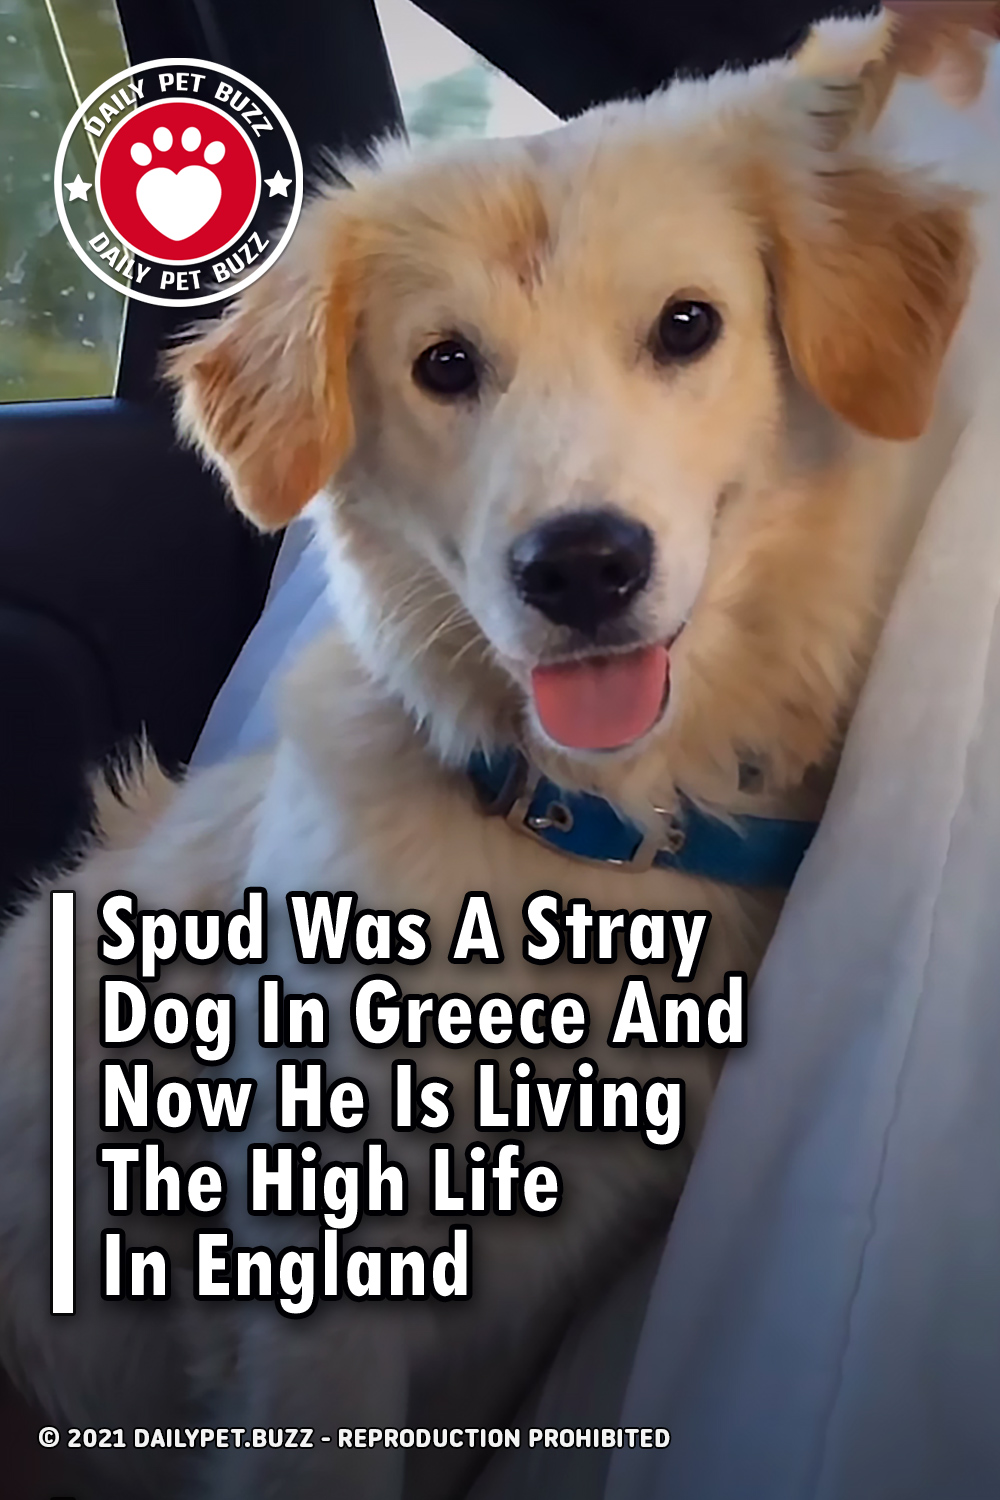 Spud Was A Stray Dog In Greece And Now He Is Living The High Life In England